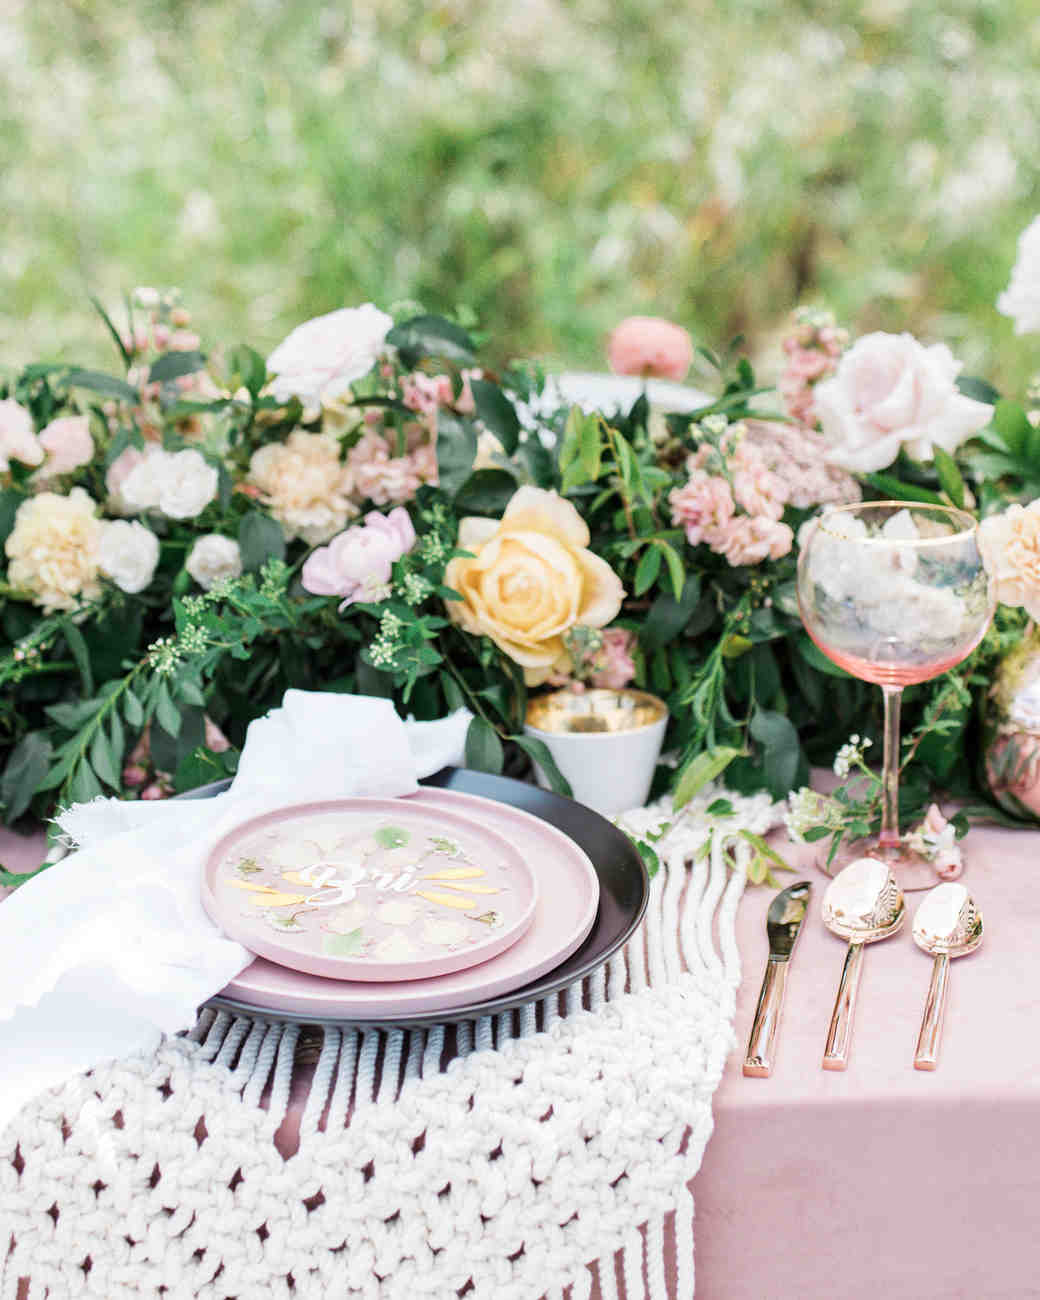 b12a1e7f100 25 Bridal Shower Centerpieces the Bride-to-Be Will Love